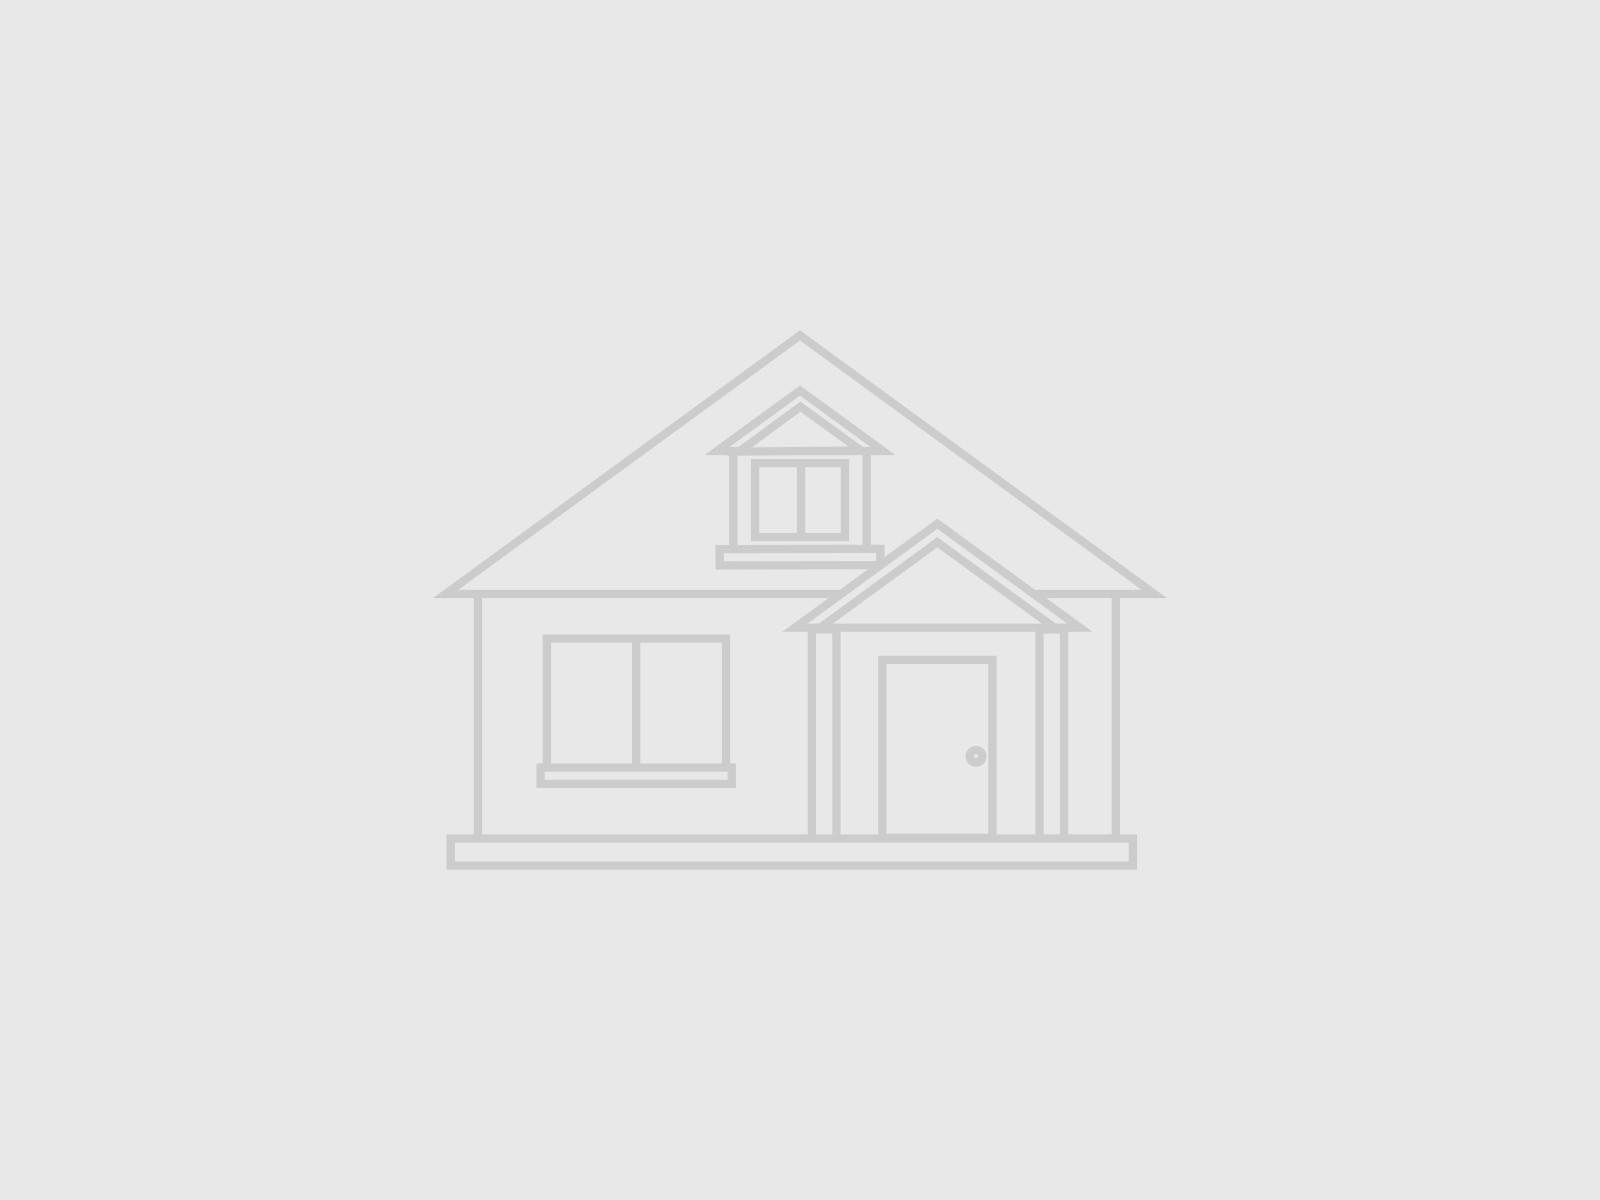 Single Family Homes for Sale at 2400 Clarke Street River Grove, Illinois 60171 United States